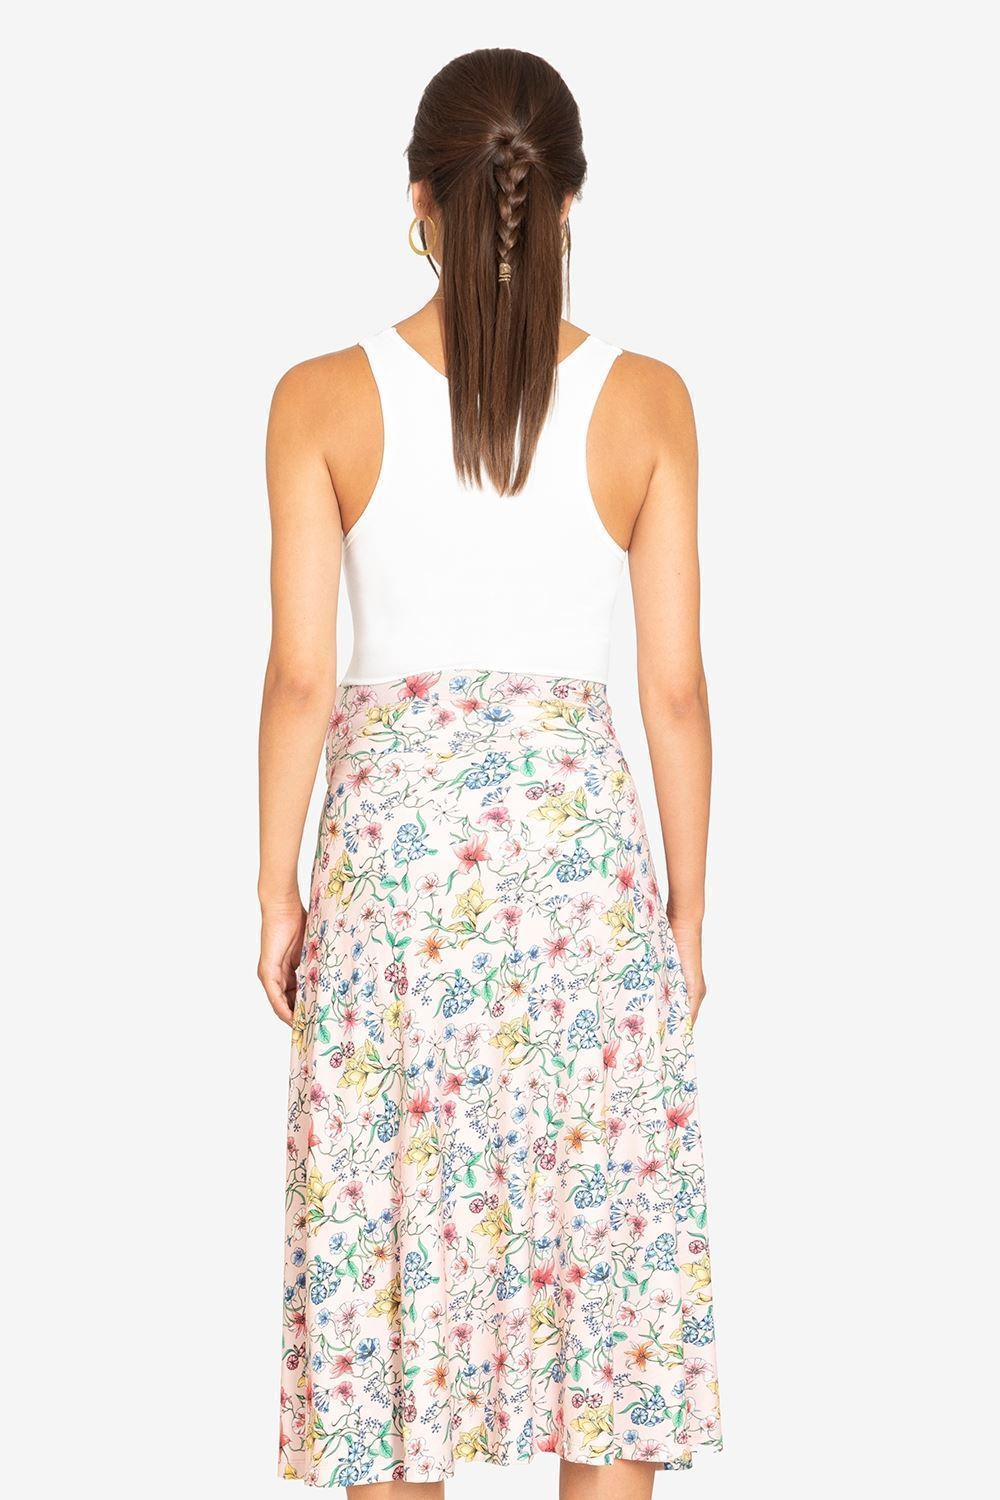 Pink floral maternity skirt - from back